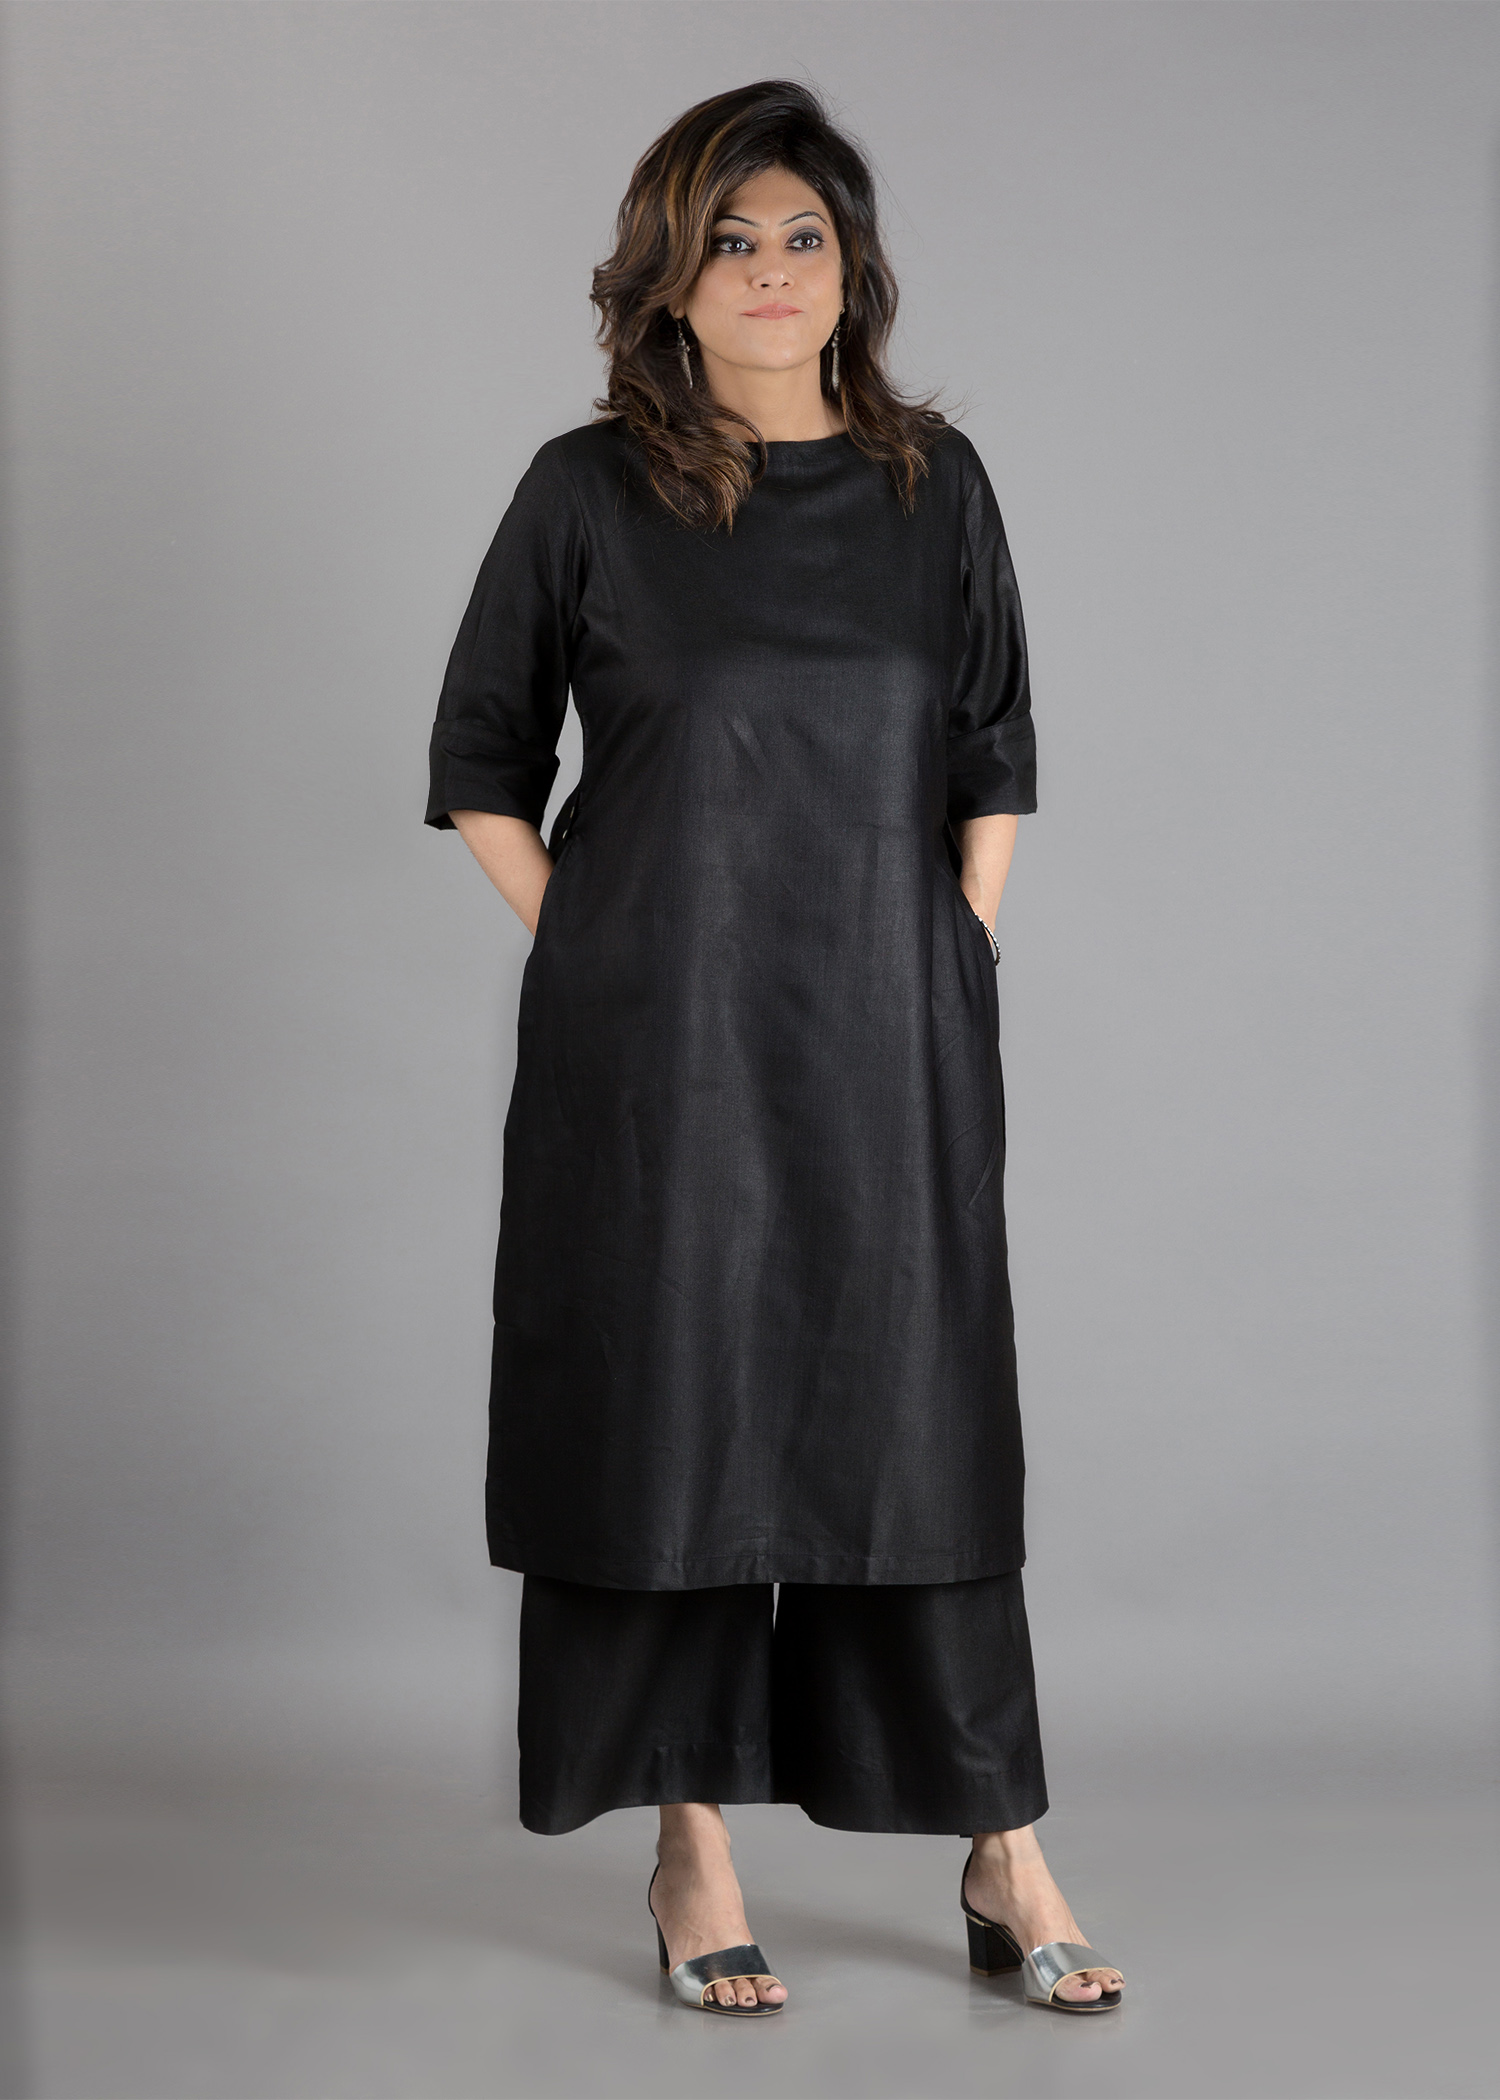 Black Silk Cotton Kurta - Round Neck